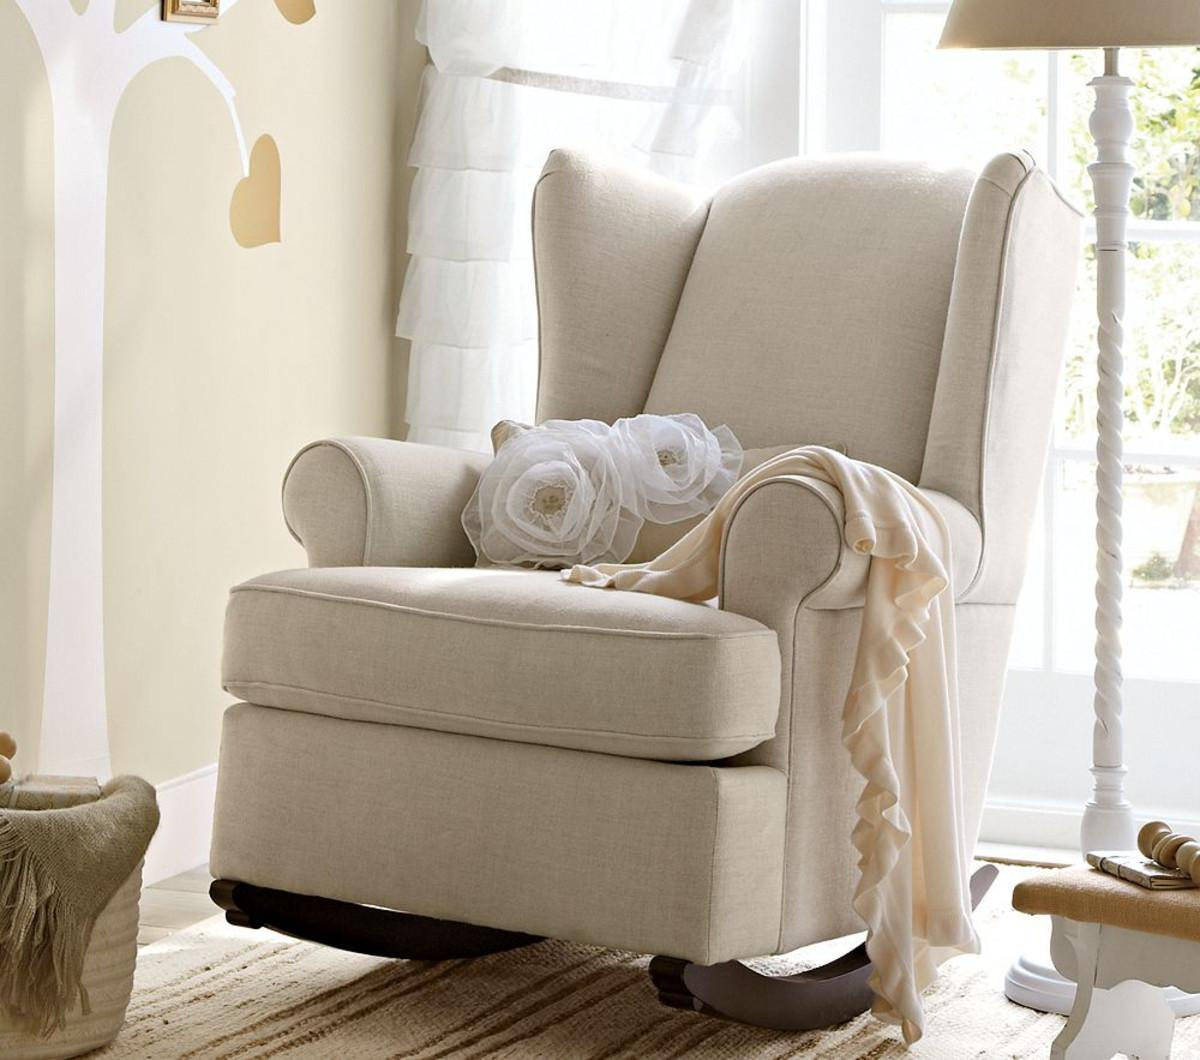 Rocking Chair Design Pottery Barn Kids